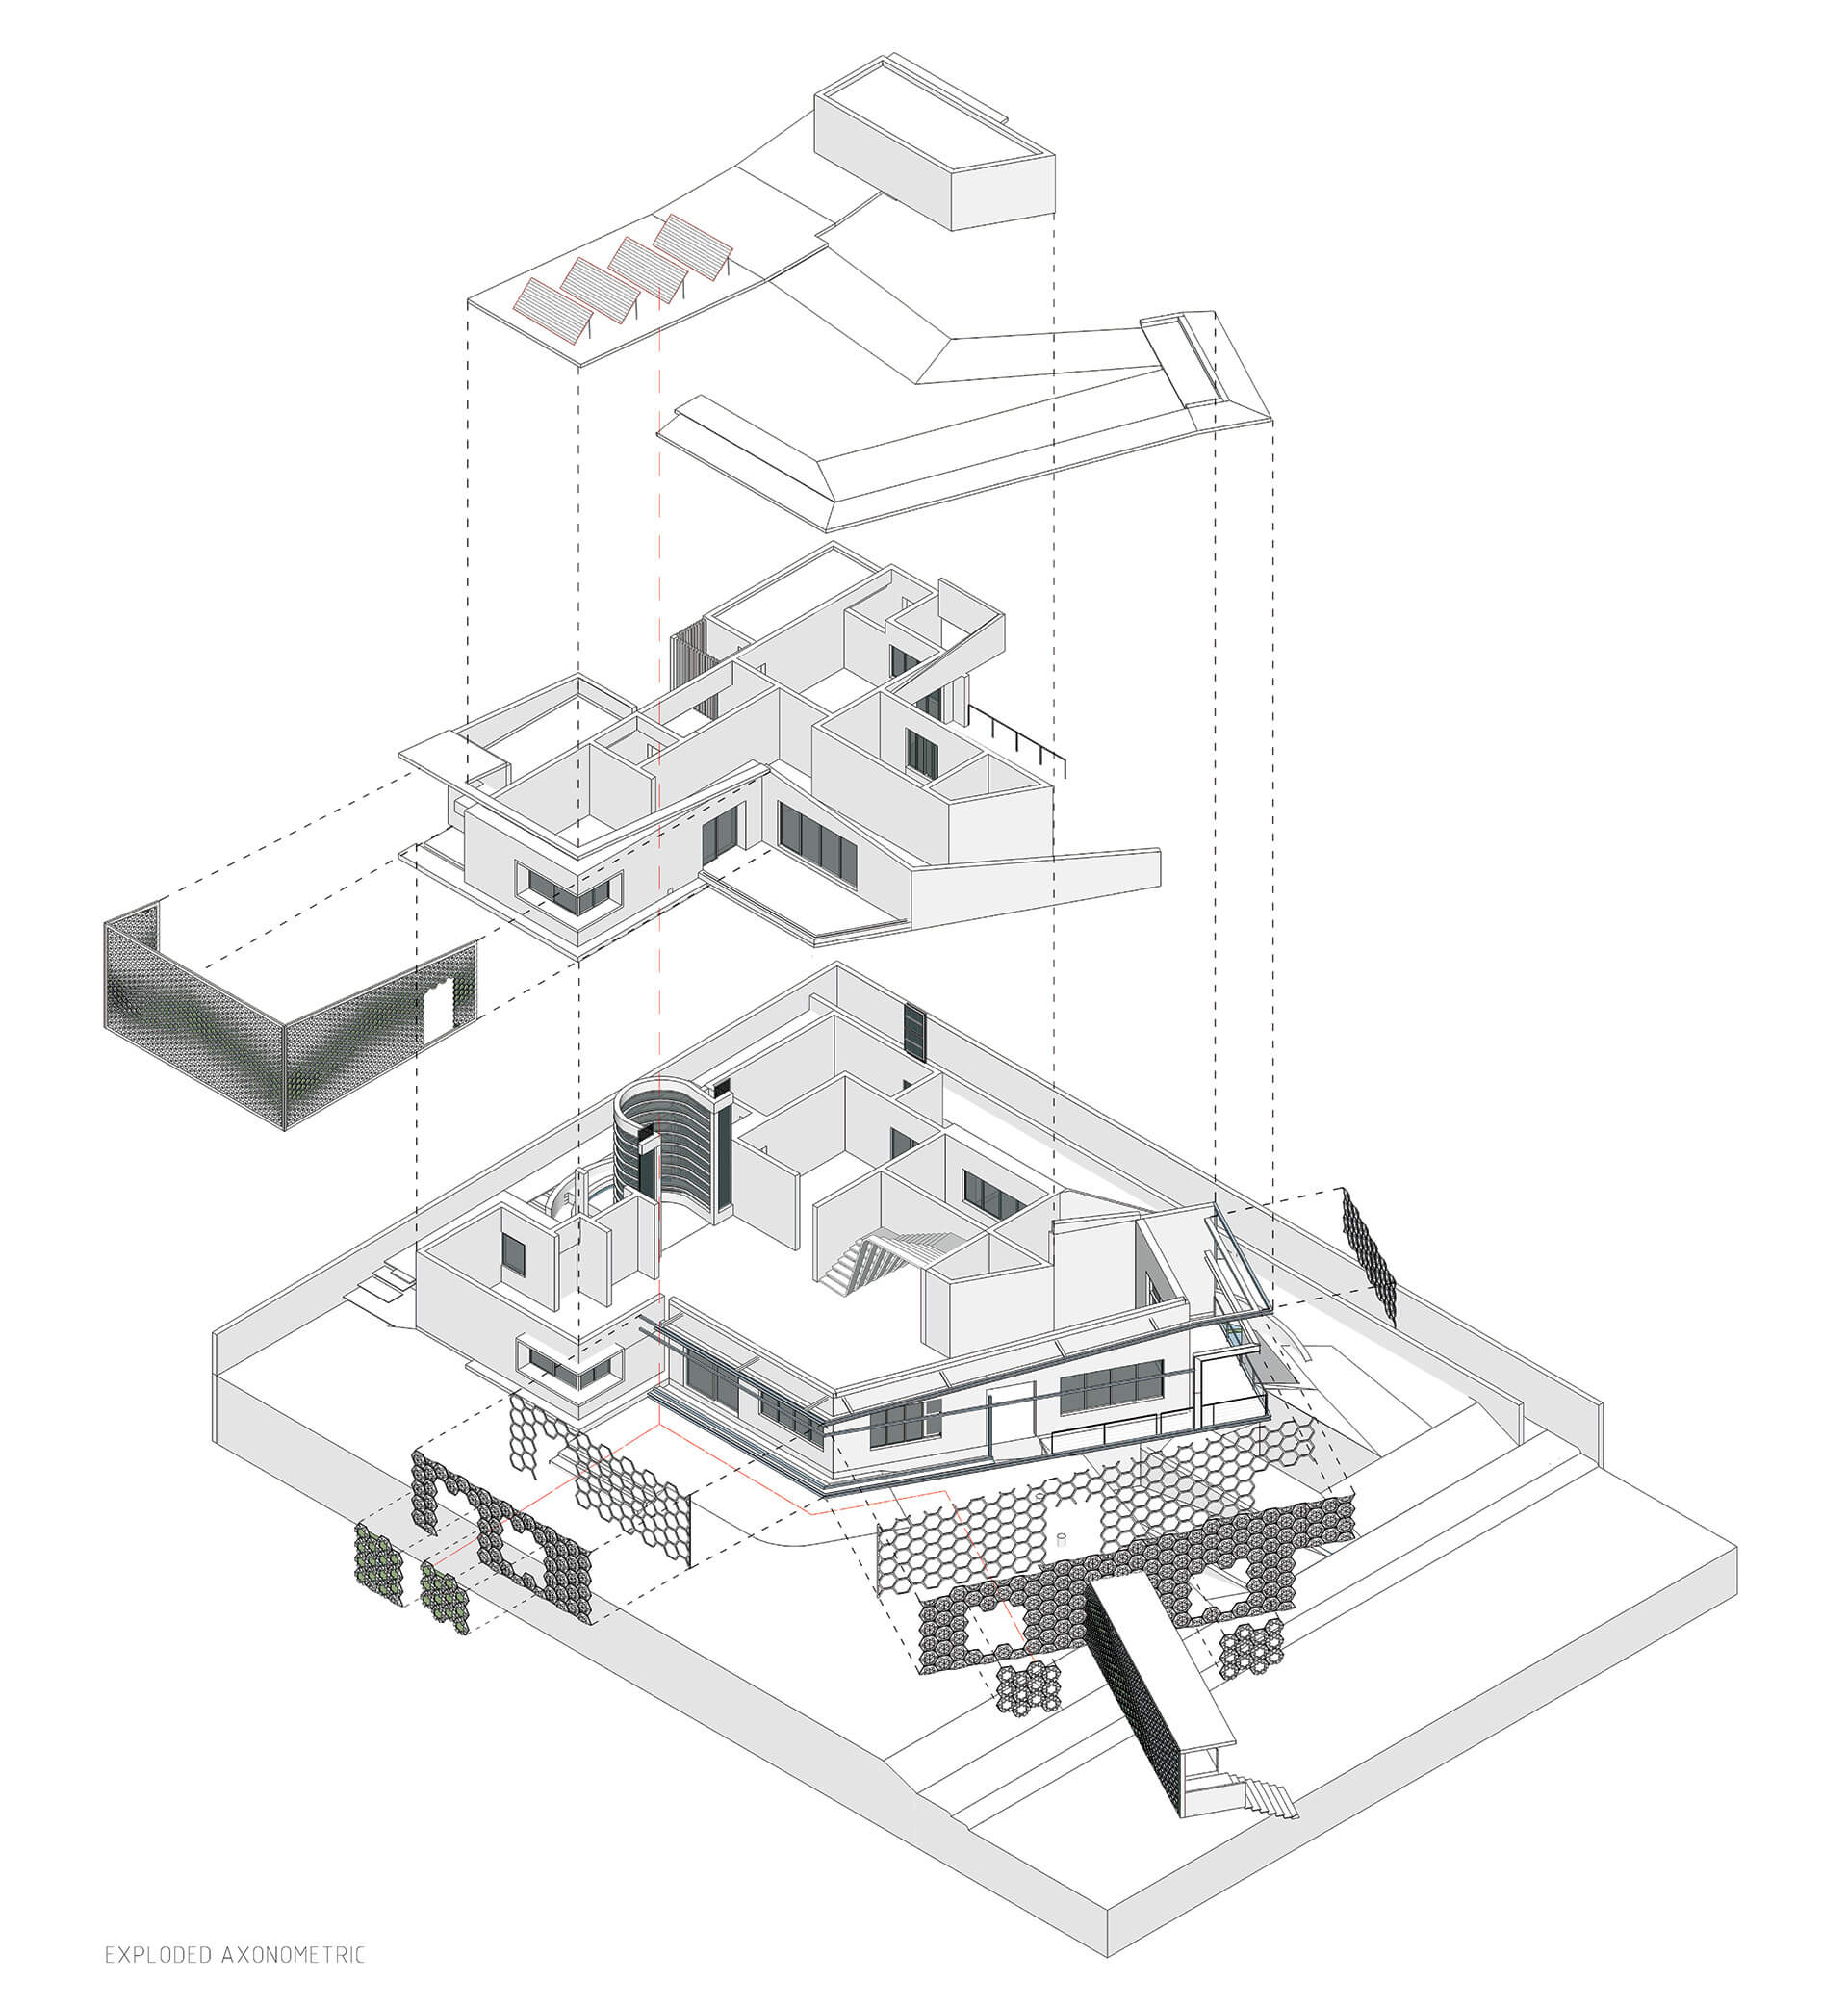 Axonometric diagram of the Hive house | Hive| Openideas Architects| STIRworld